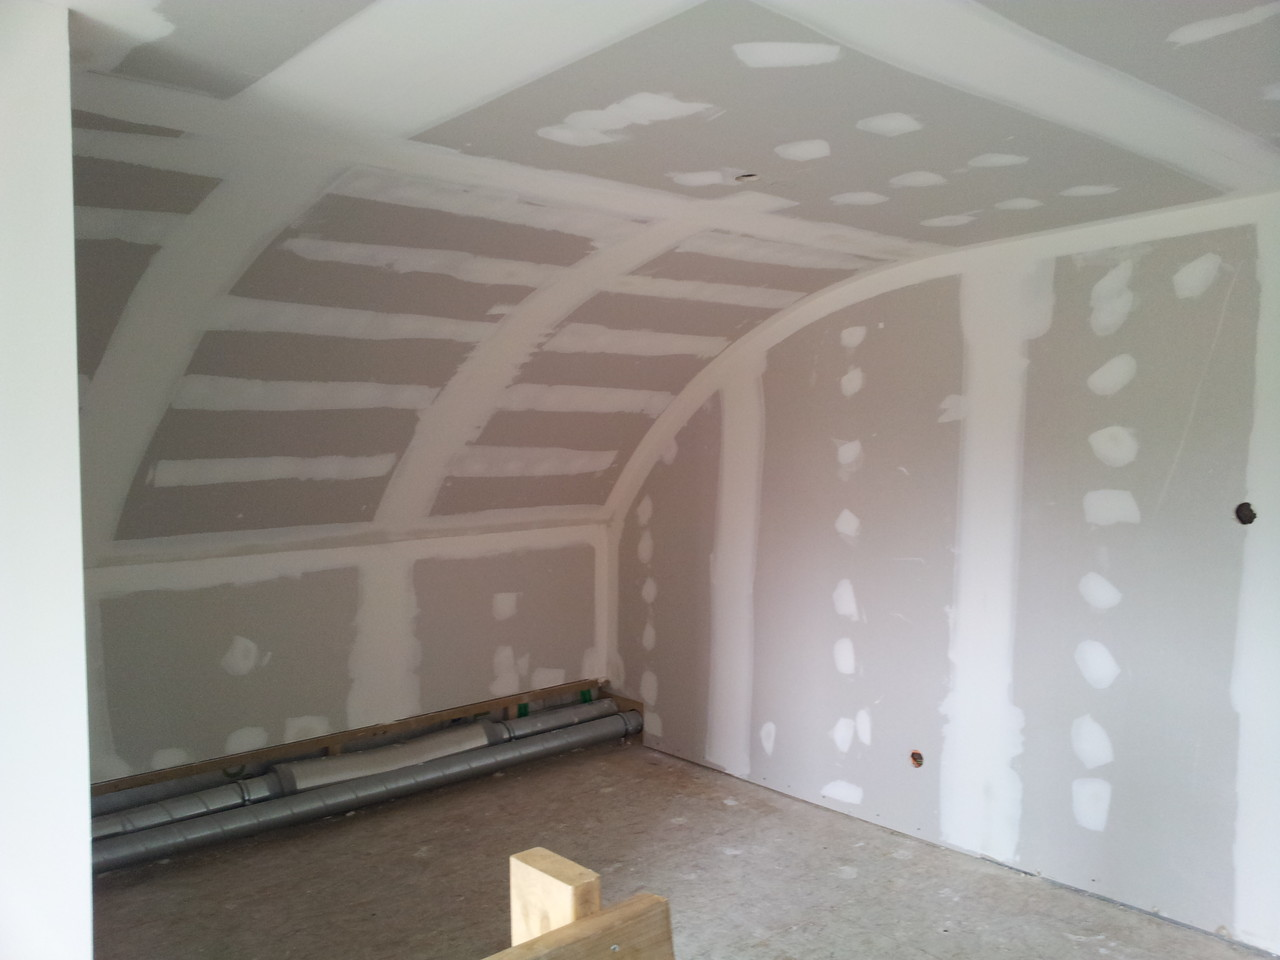 plafond arrondi en placo 6mm double couche